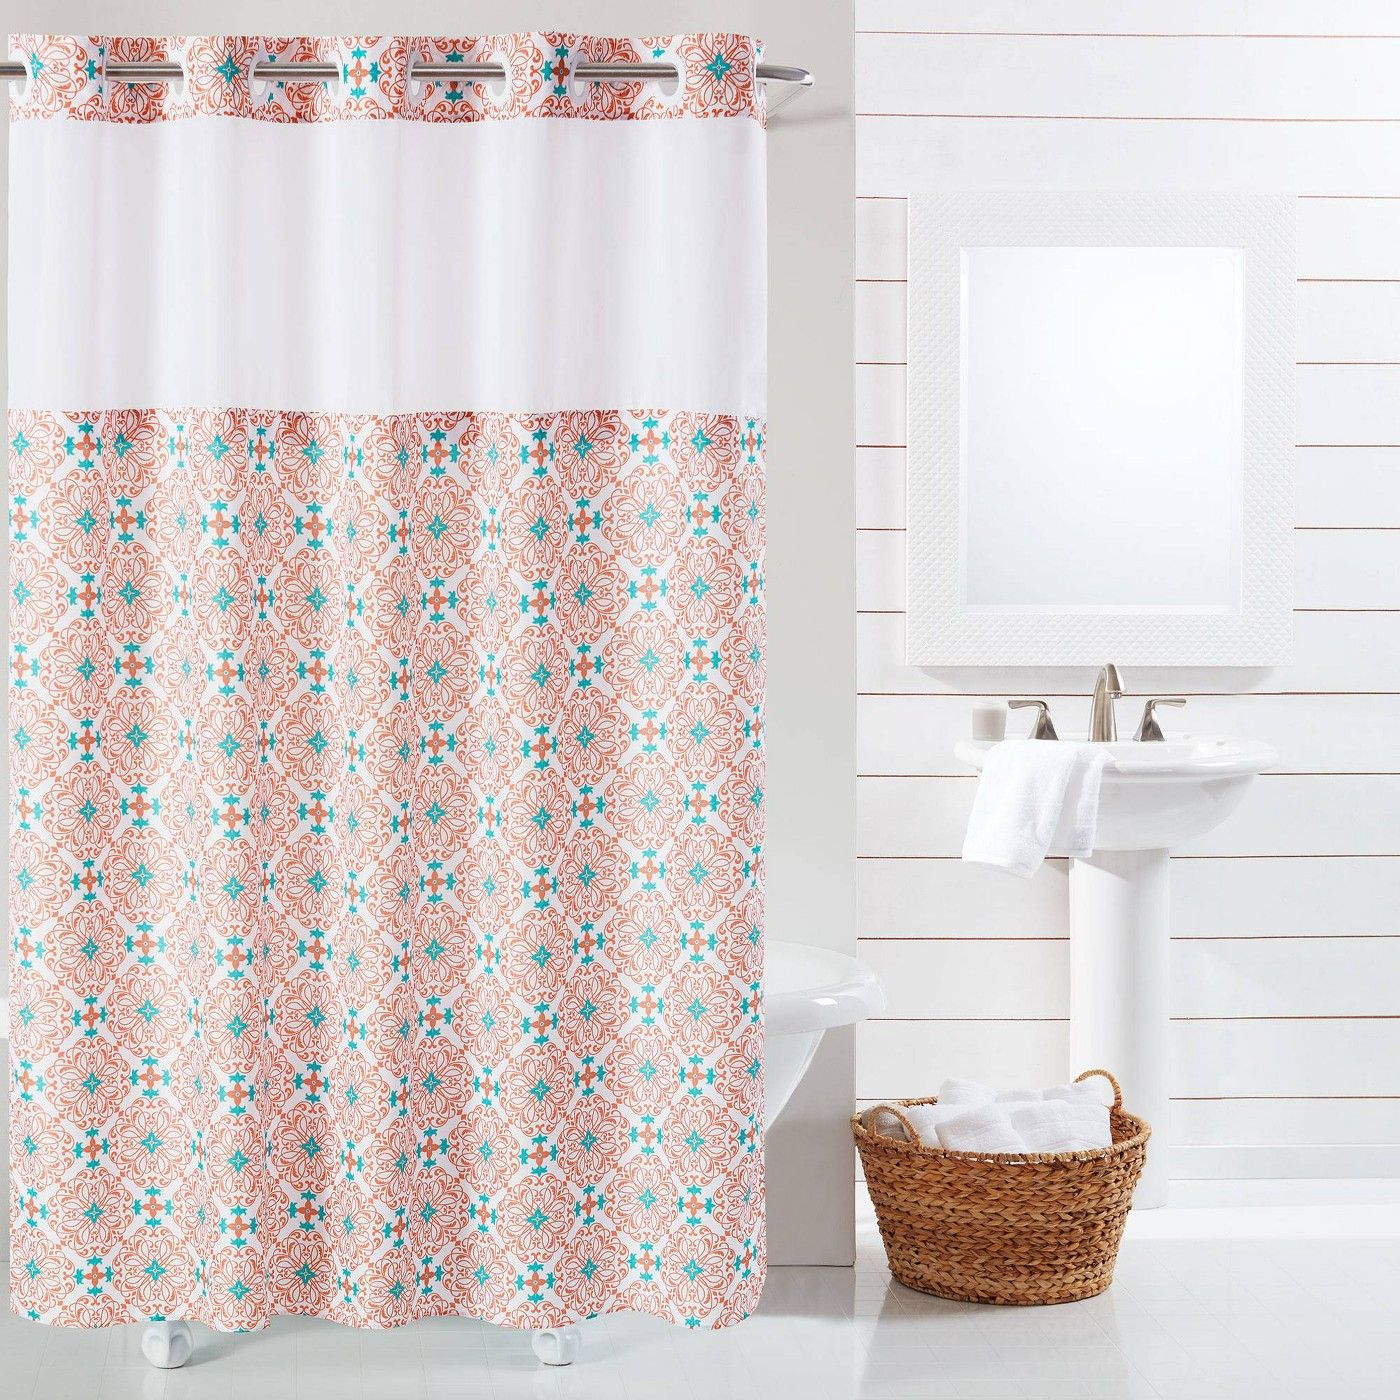 Vervain Medallion Shower Curtain With Liner Hookless Shower